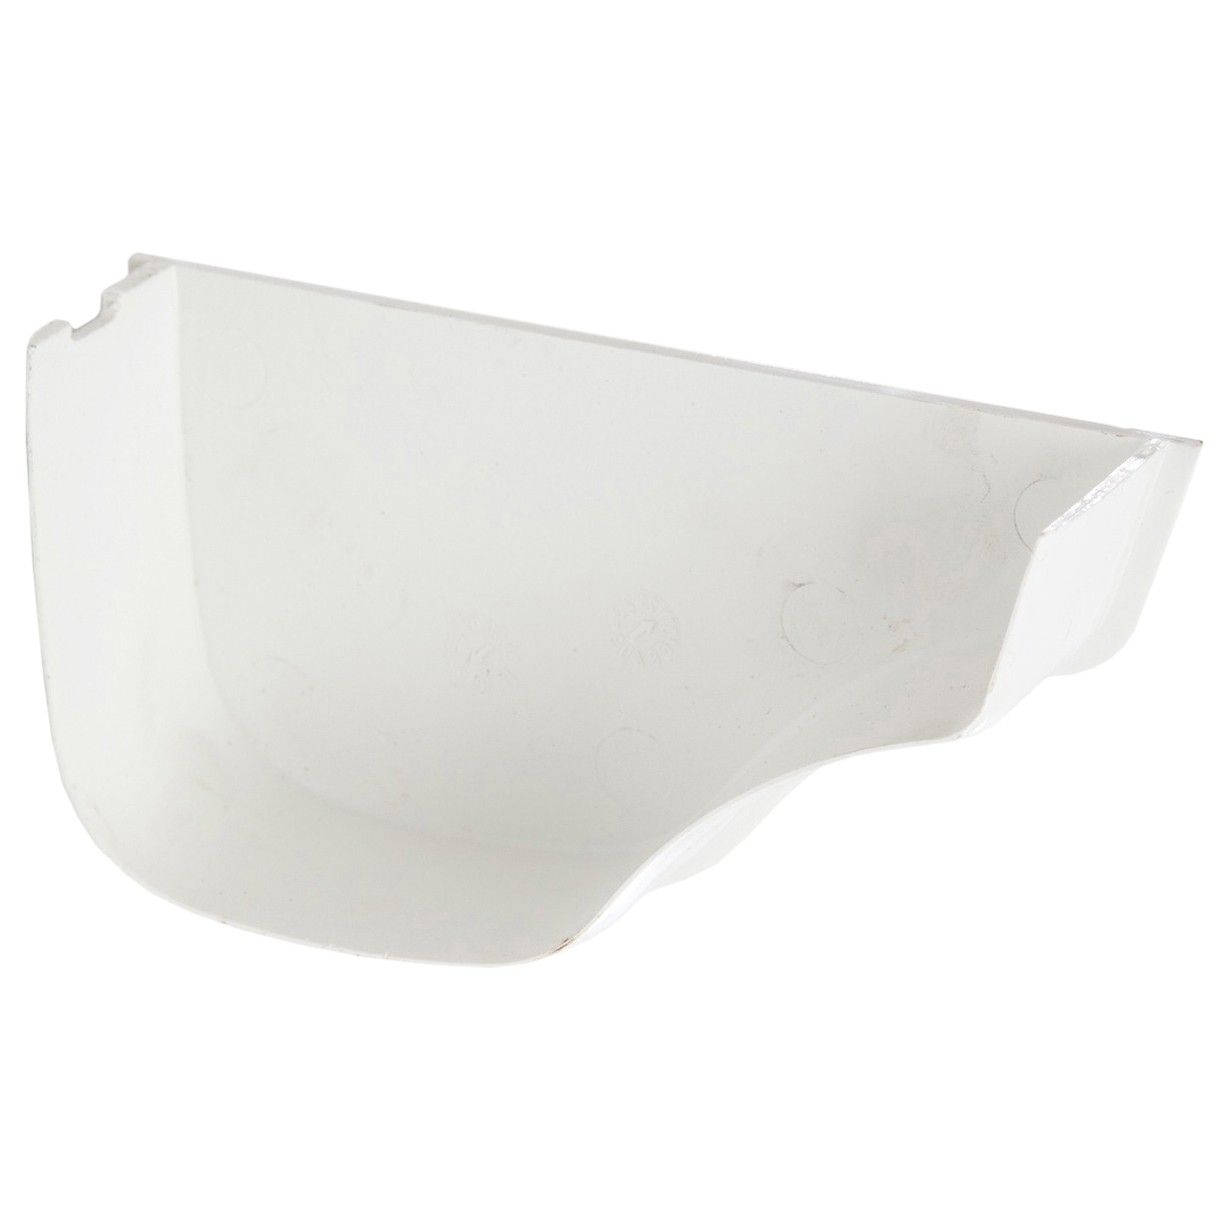 Polypipe 130mm Ogee Extra Capacity Gutter Internal Stop End (Right Hand) - White